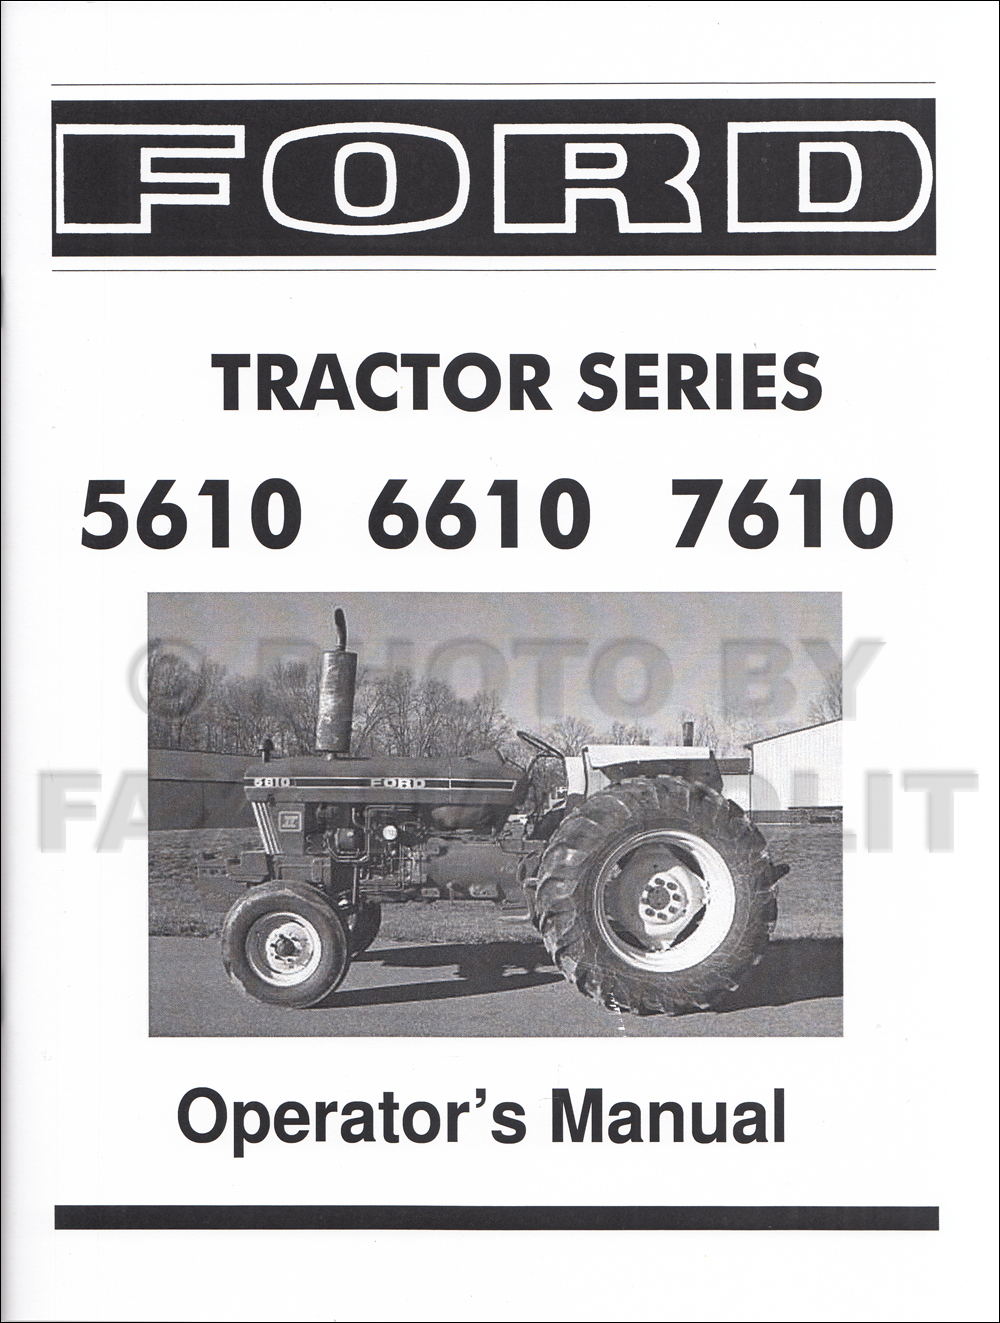 Industrial Ford Tractor Poster 1932-1986 Manuals